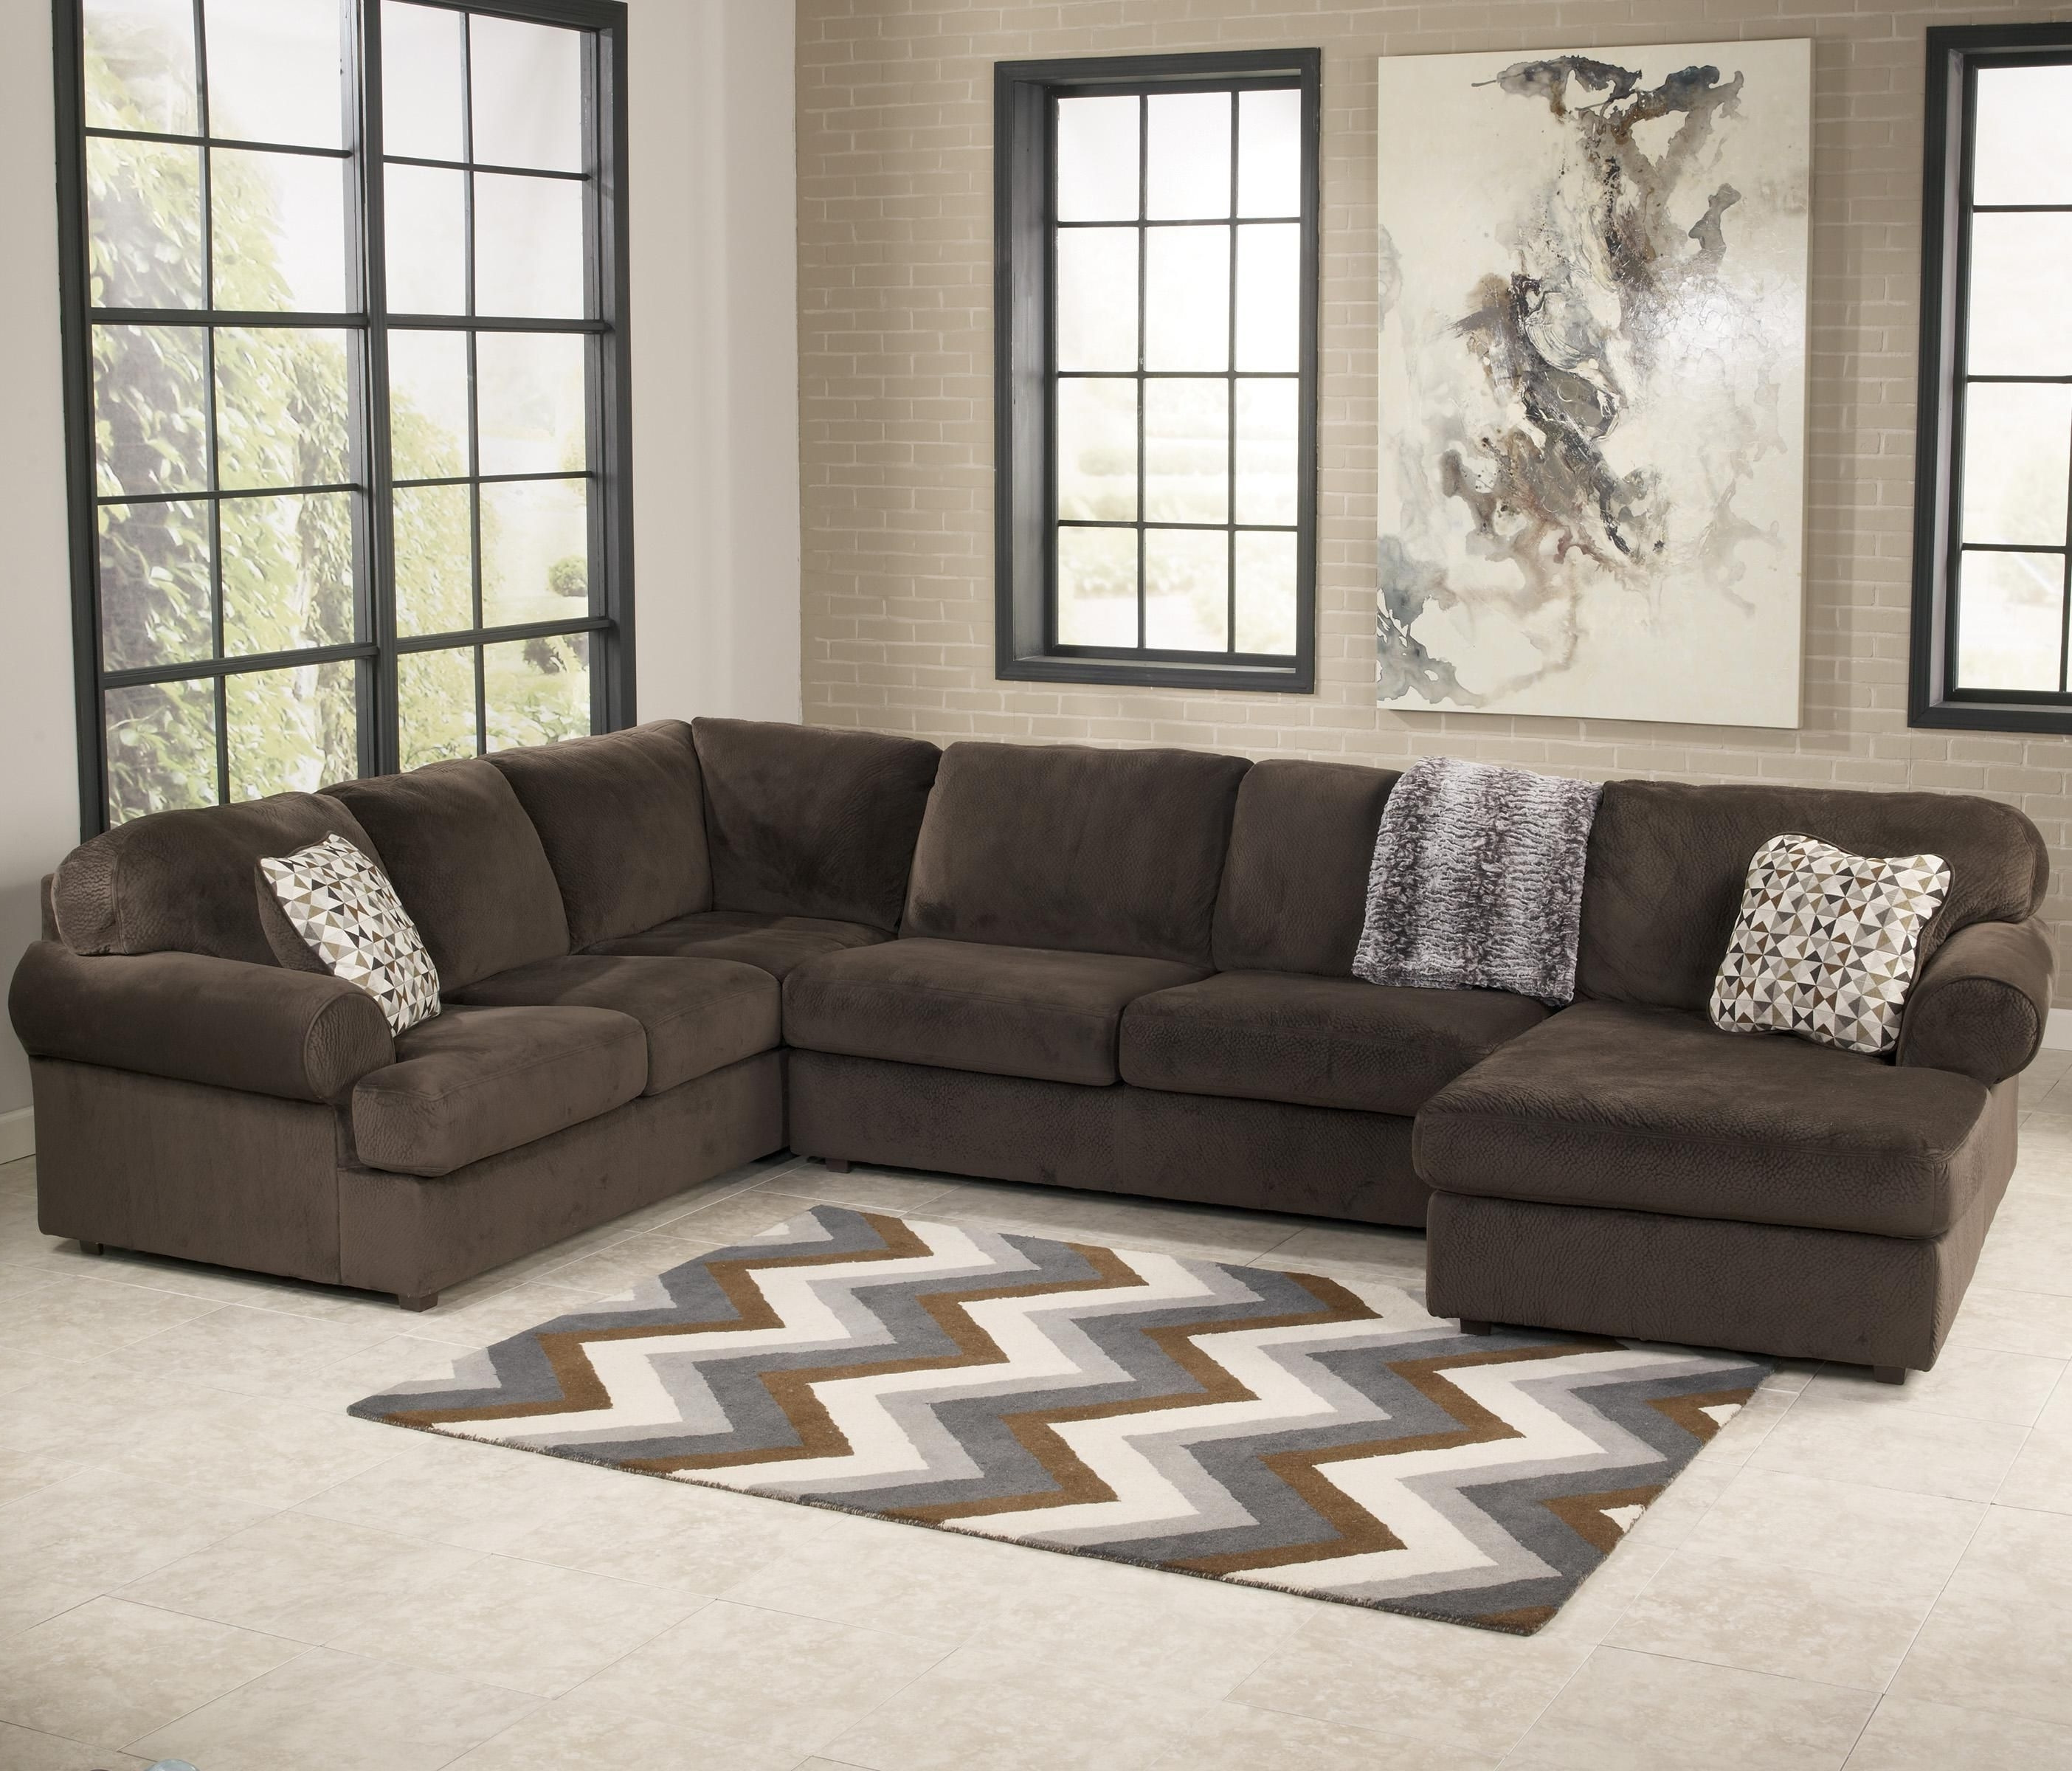 Jessa Place – Chocolate Casual Sectional Sofa With Left Chaise Throughout Recent Queens Ny Sectional Sofas (Gallery 18 of 20)